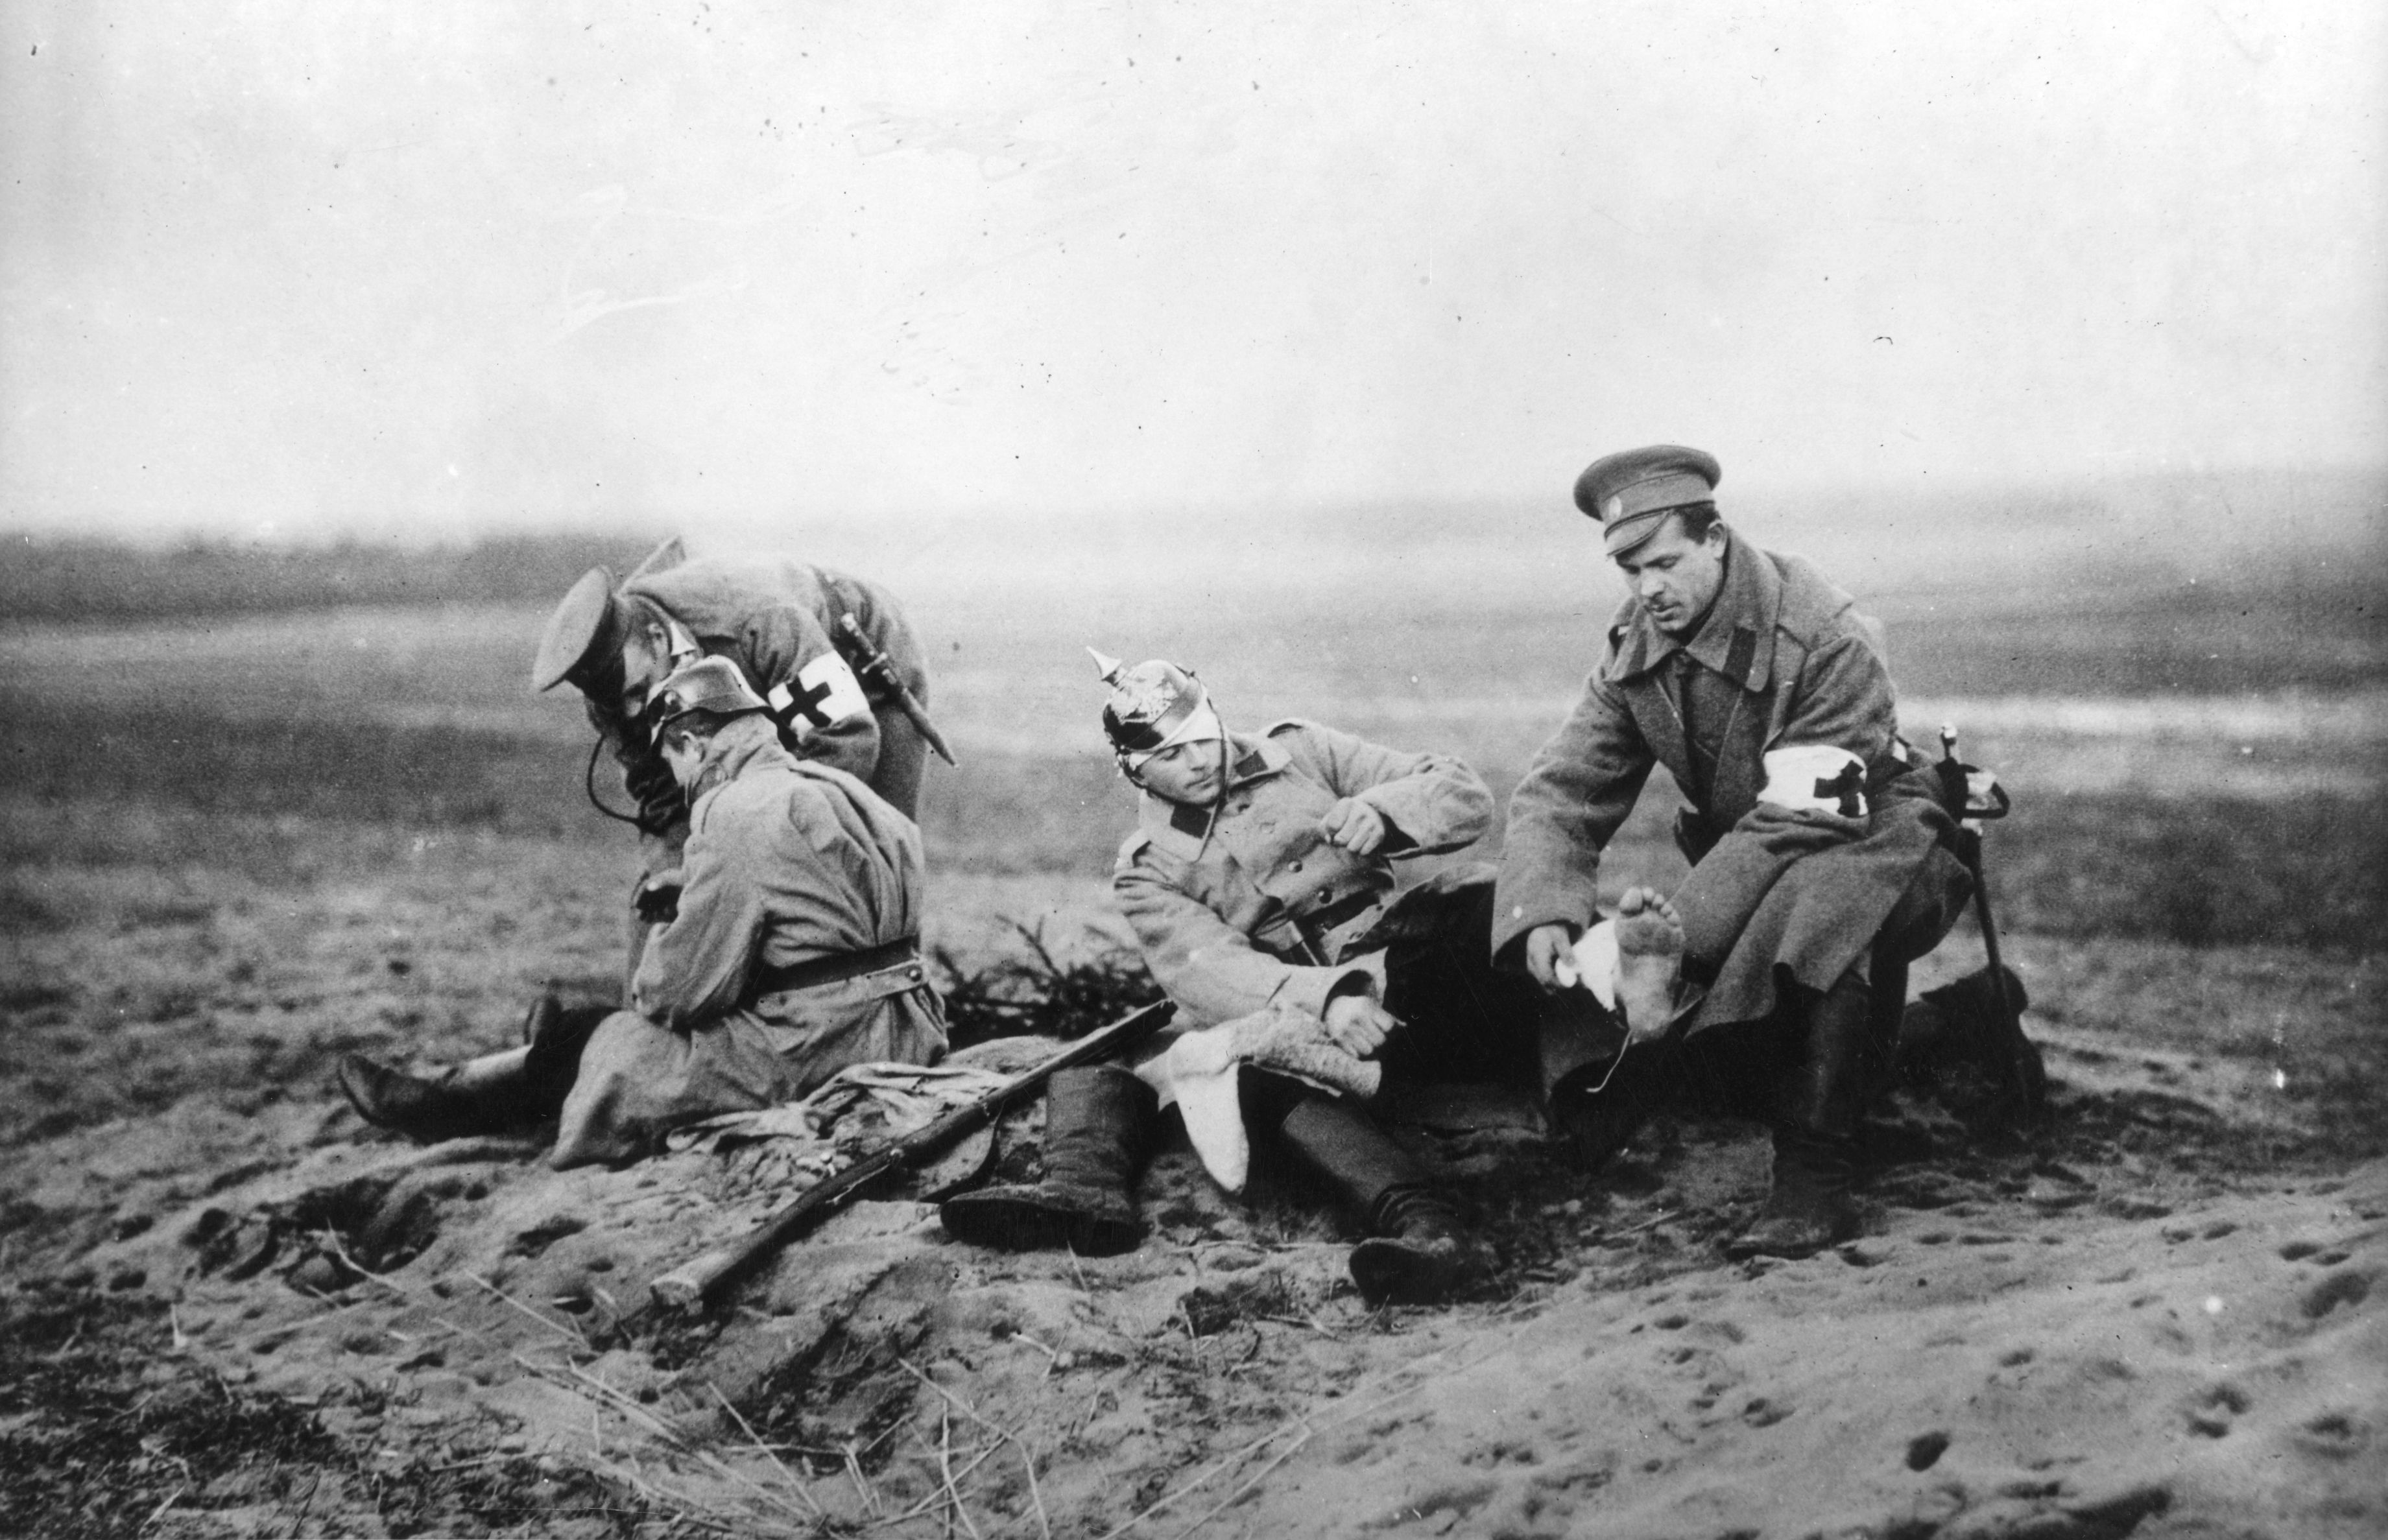 6 battlefield medical innovations that moved to mainstream